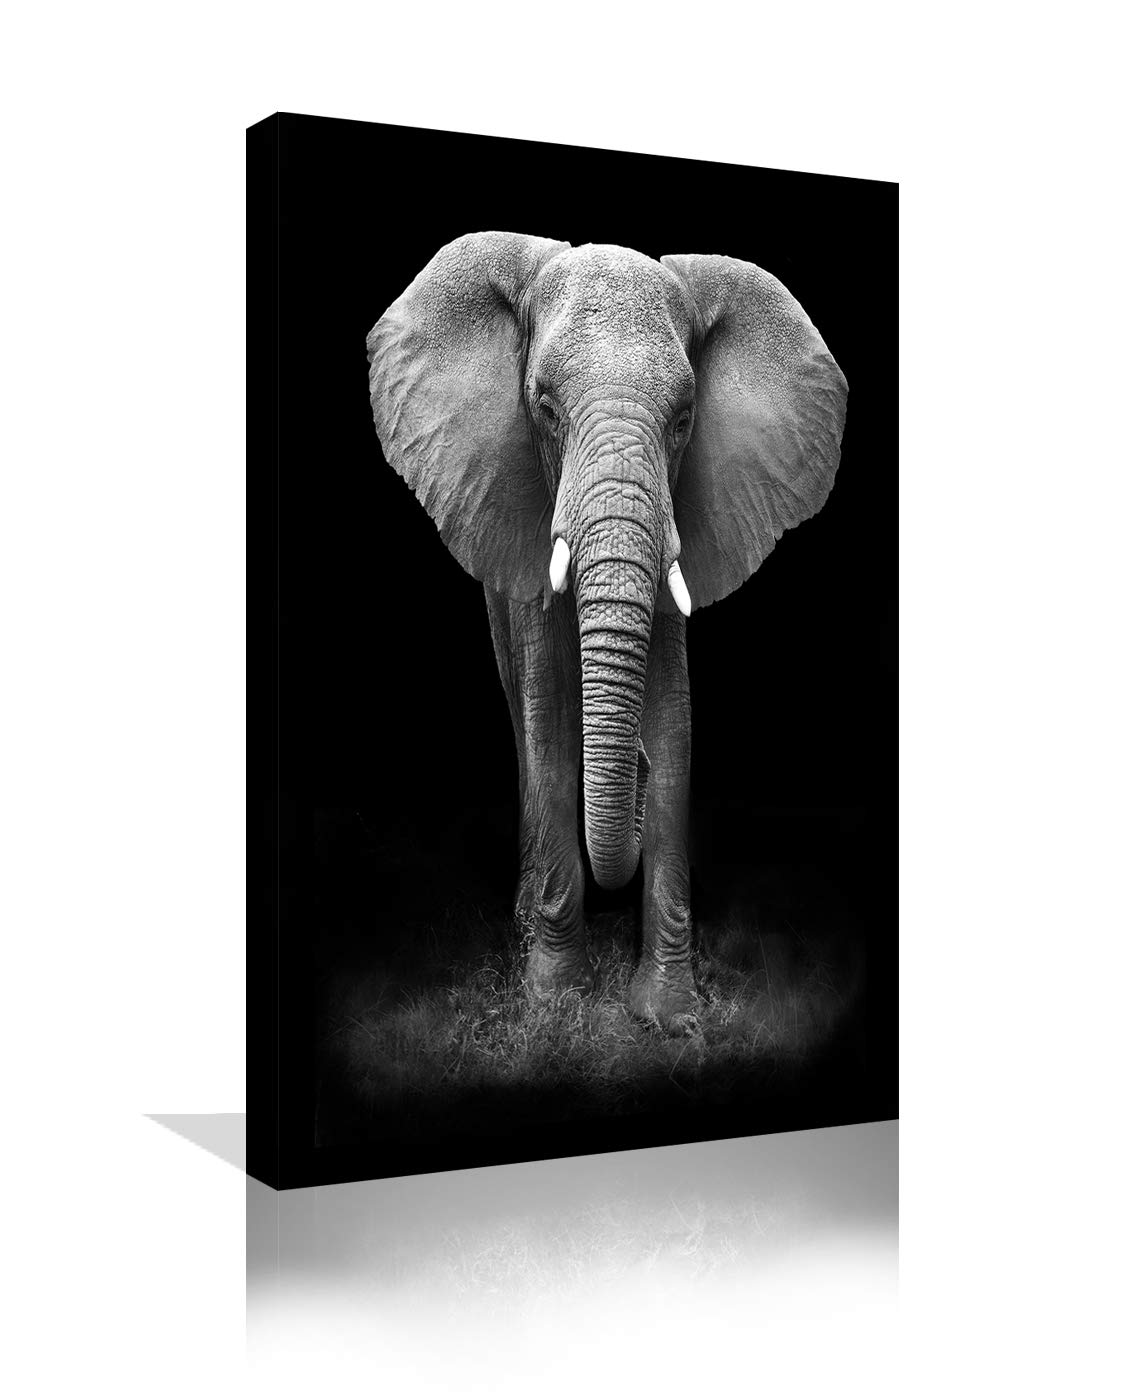 Urttiiyy Black And White Elephant Wall A Buy Online In Guernsey At Desertcart